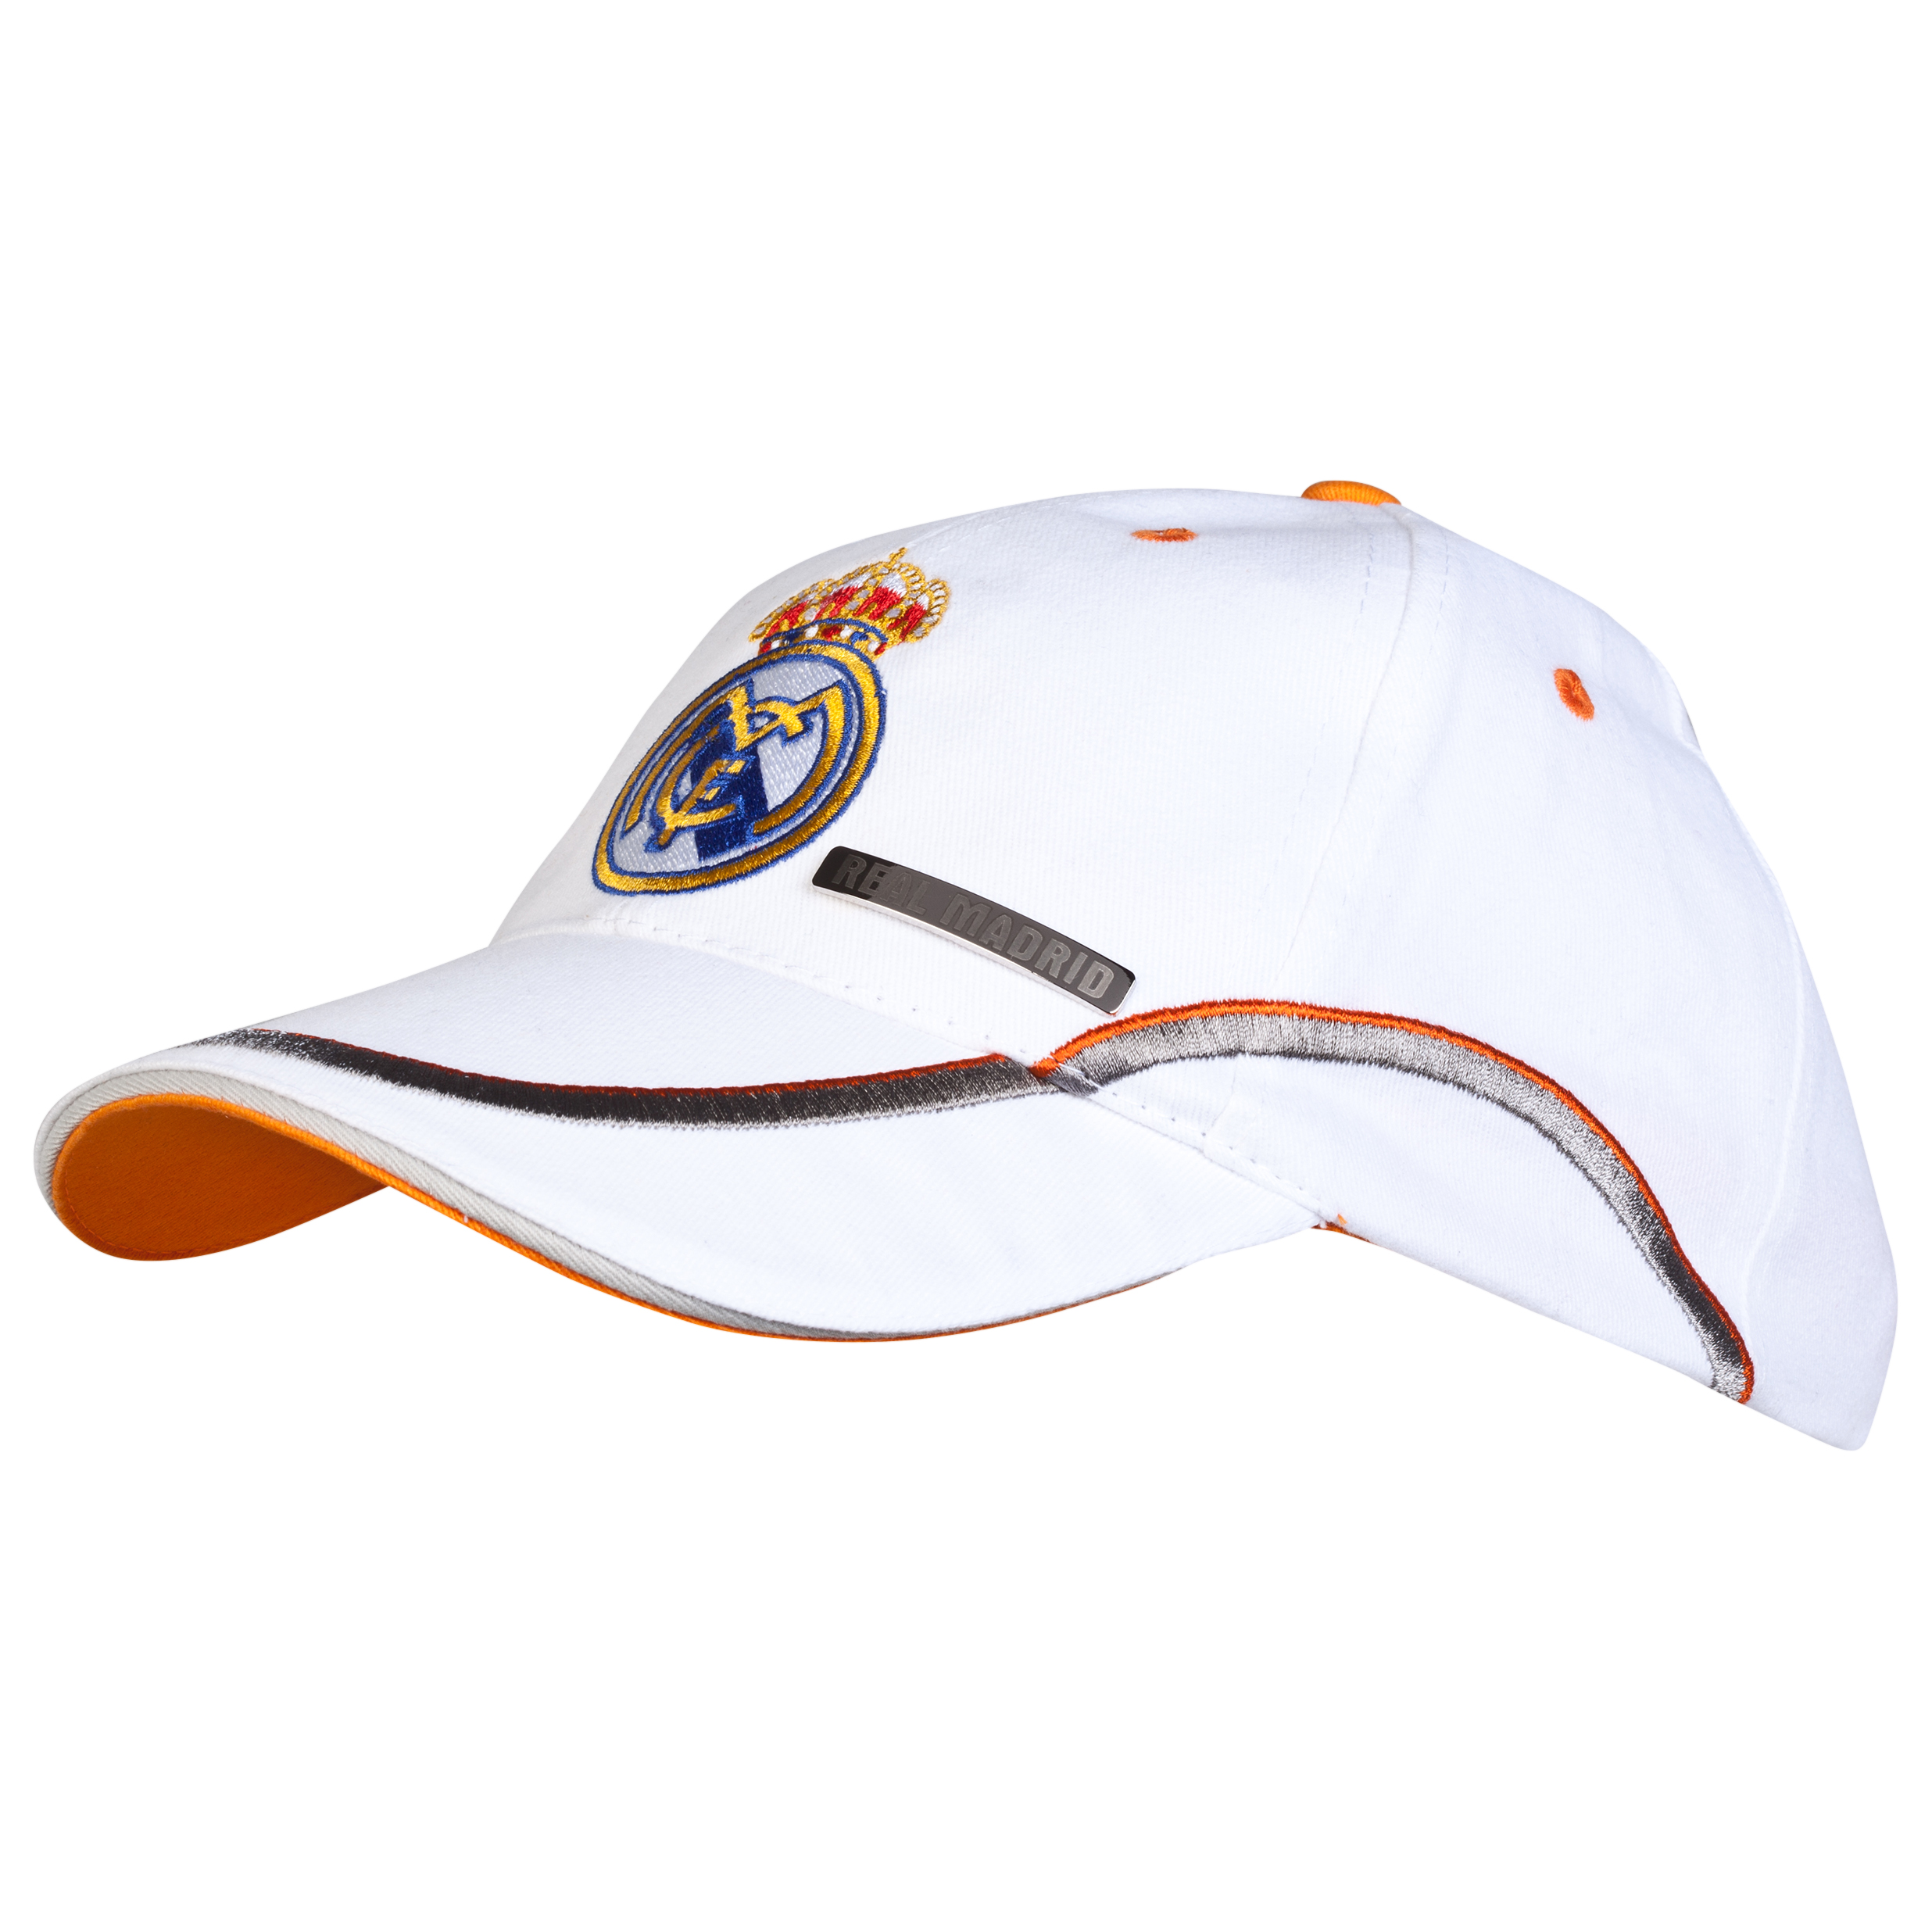 Real Madrid Crest Cap - White - Adult